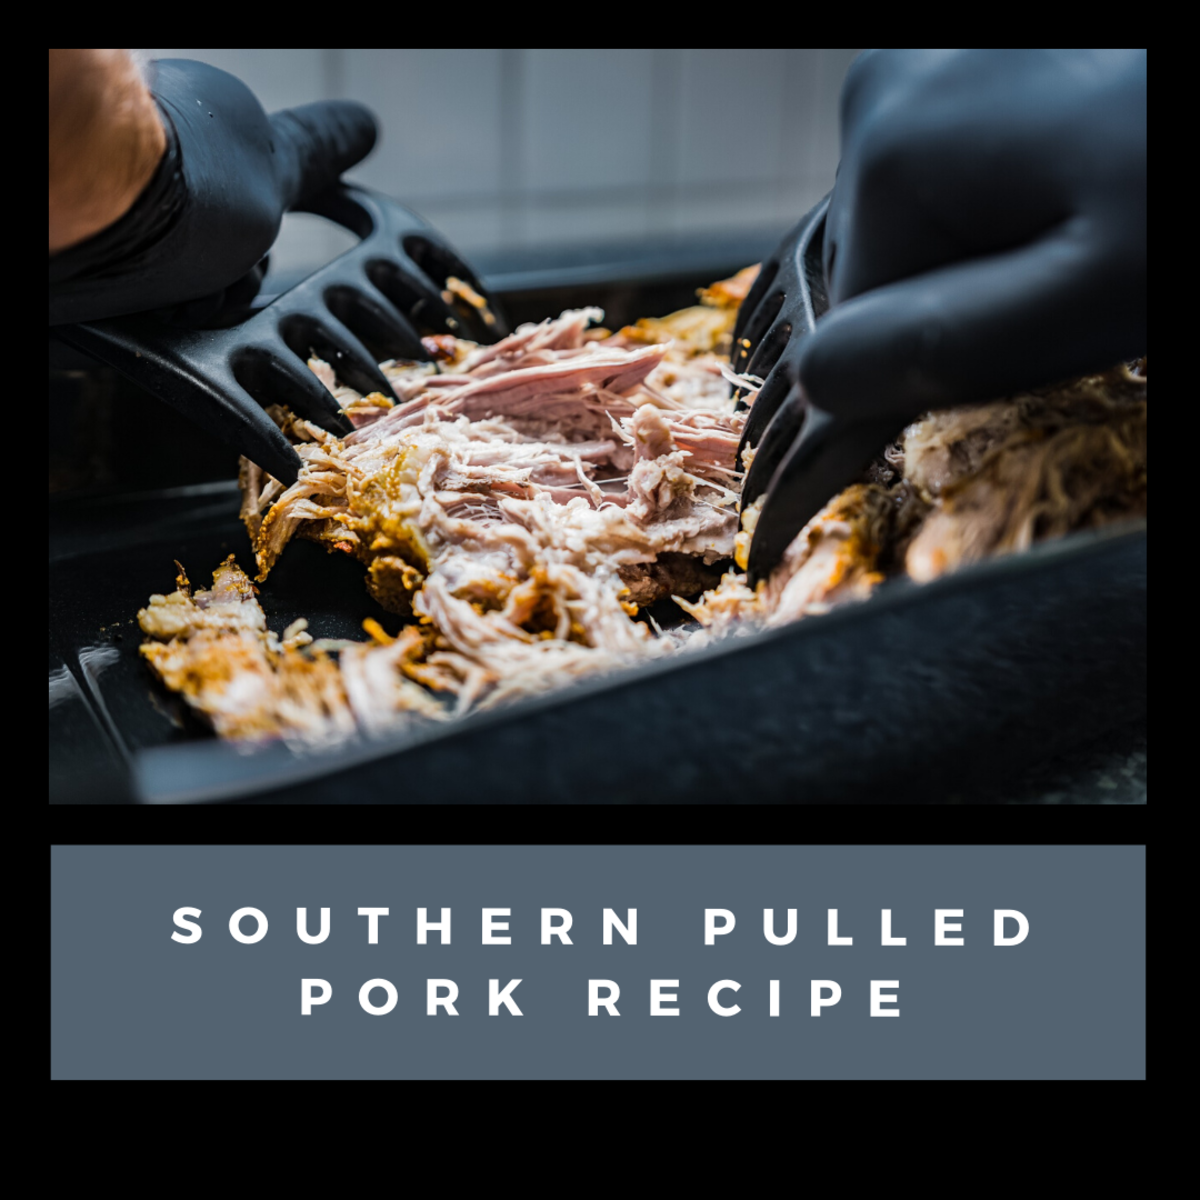 The whole family will love this pulled pork recipe.